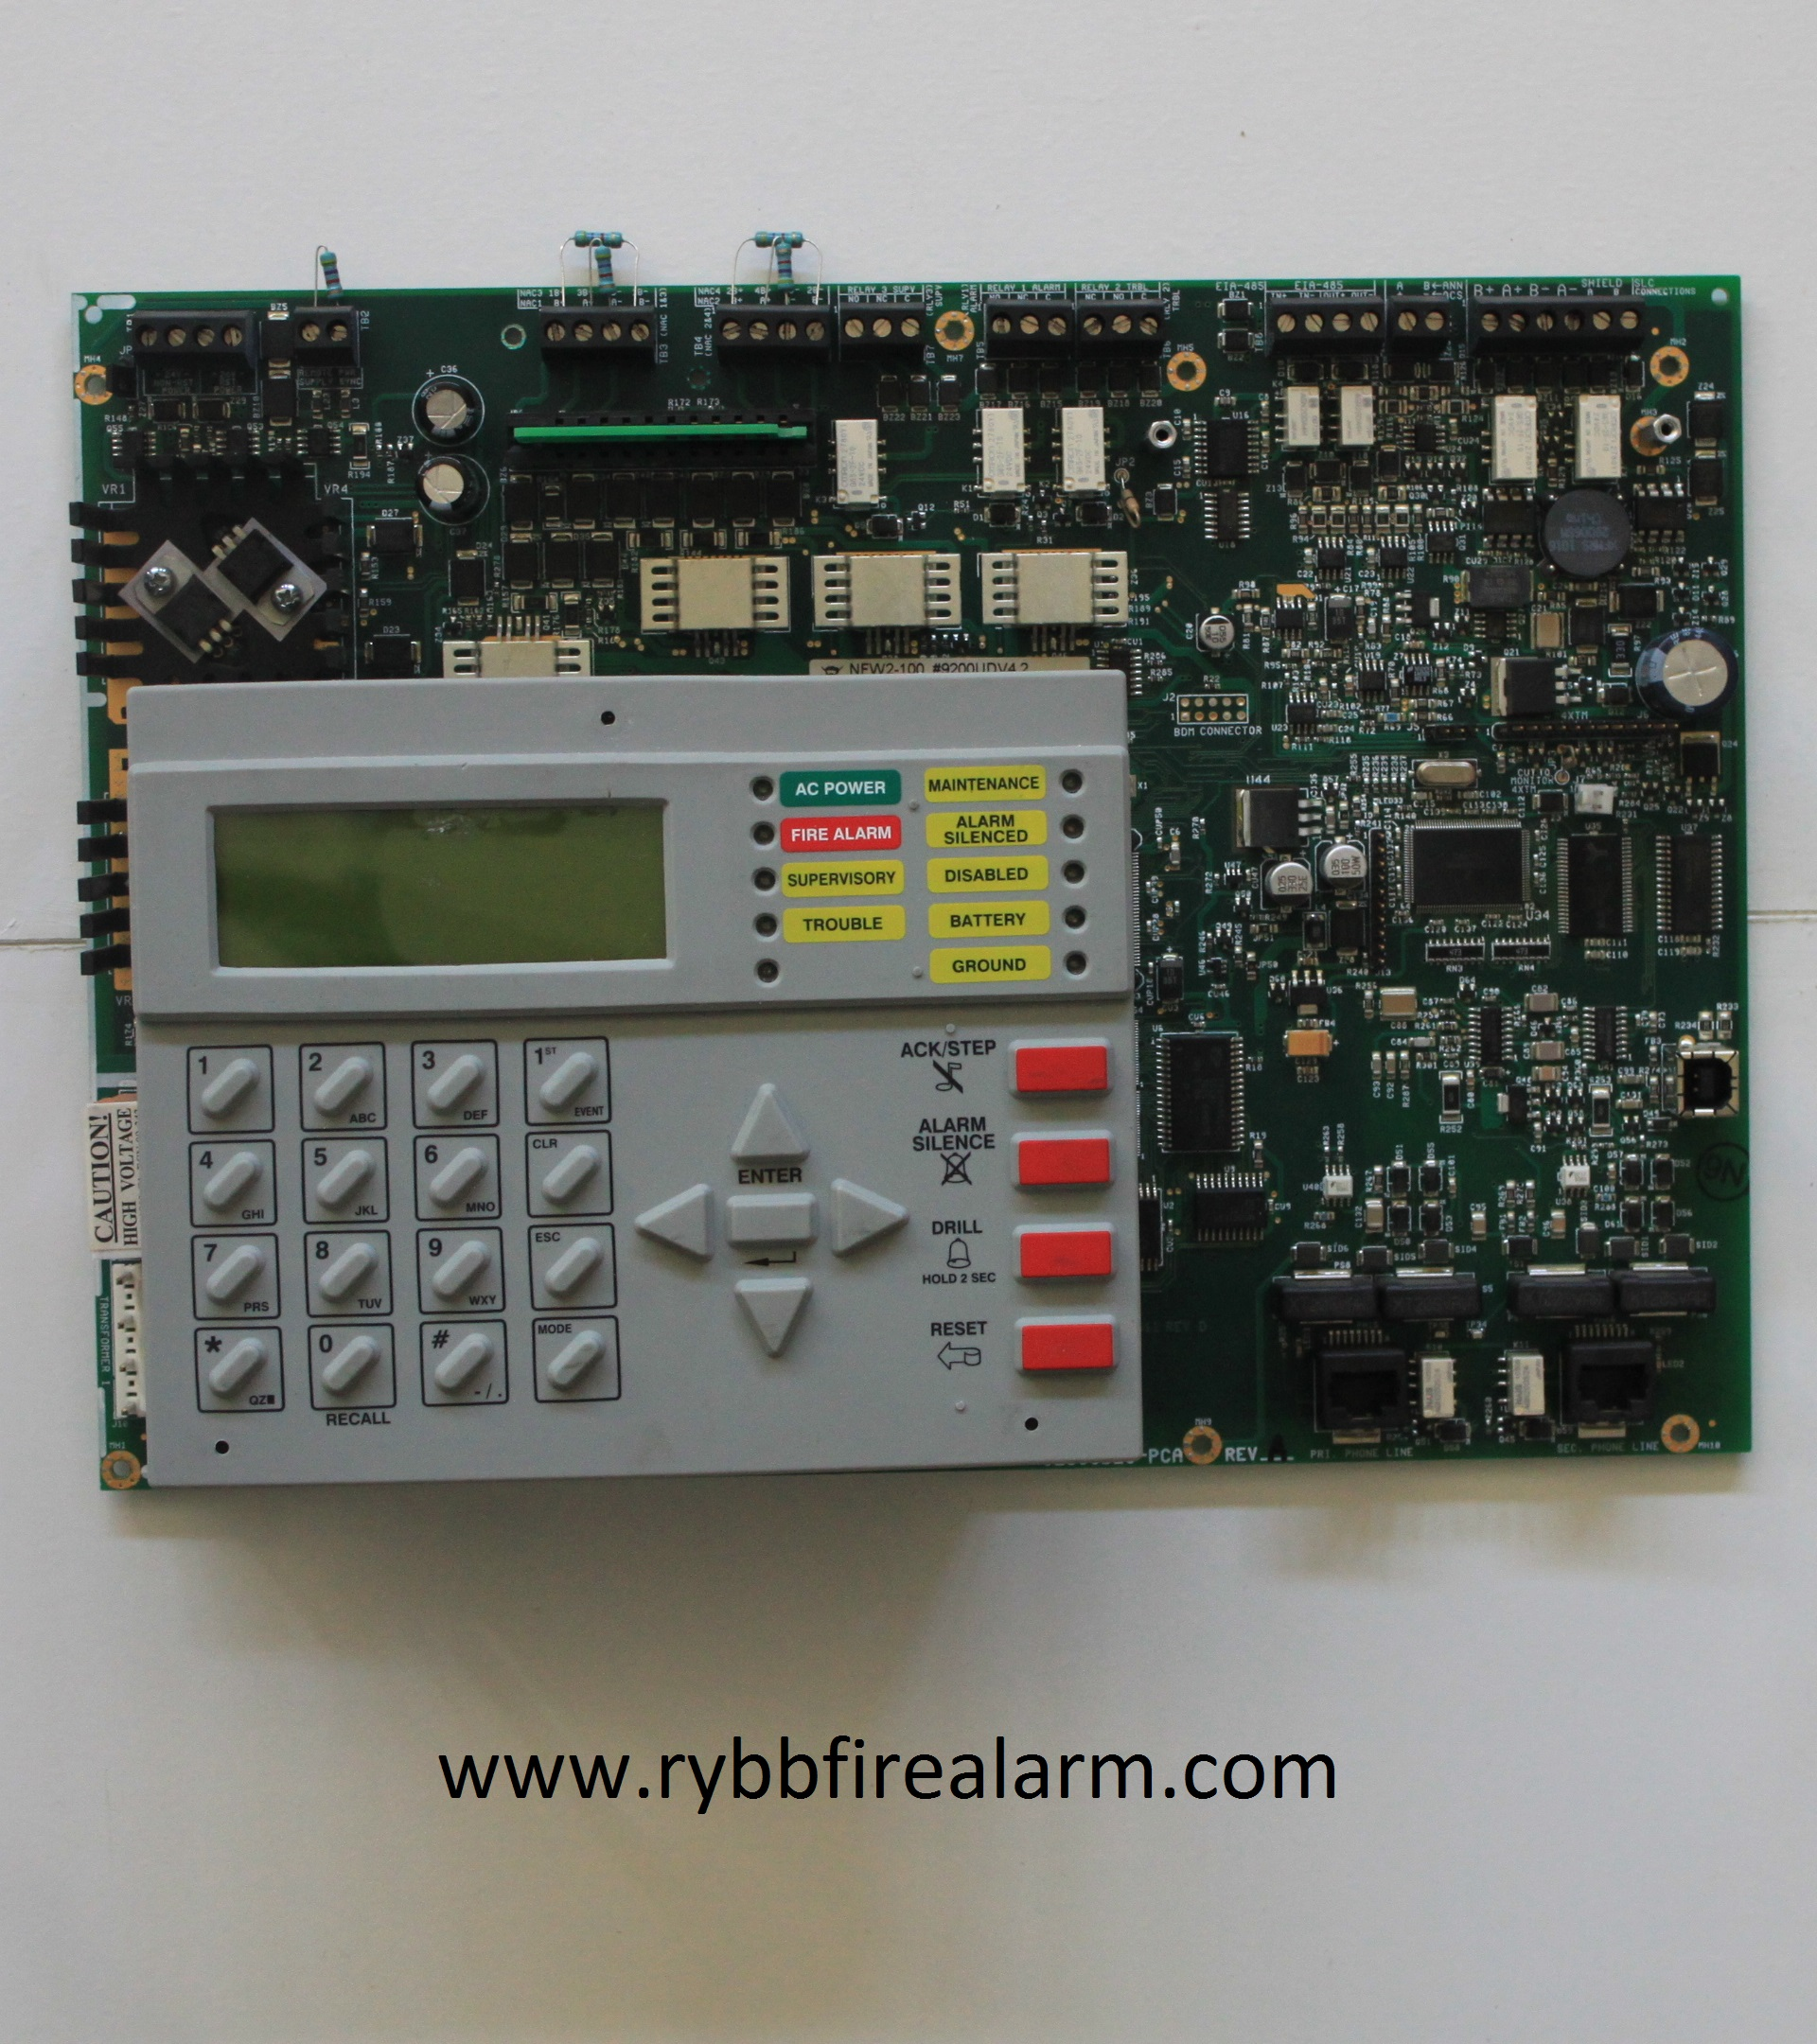 Alarm Relay Reviews >> Notifier NFW2-100 FACP Replacement Board – RYBB Fire Alarm Parts, Service, & Repairs